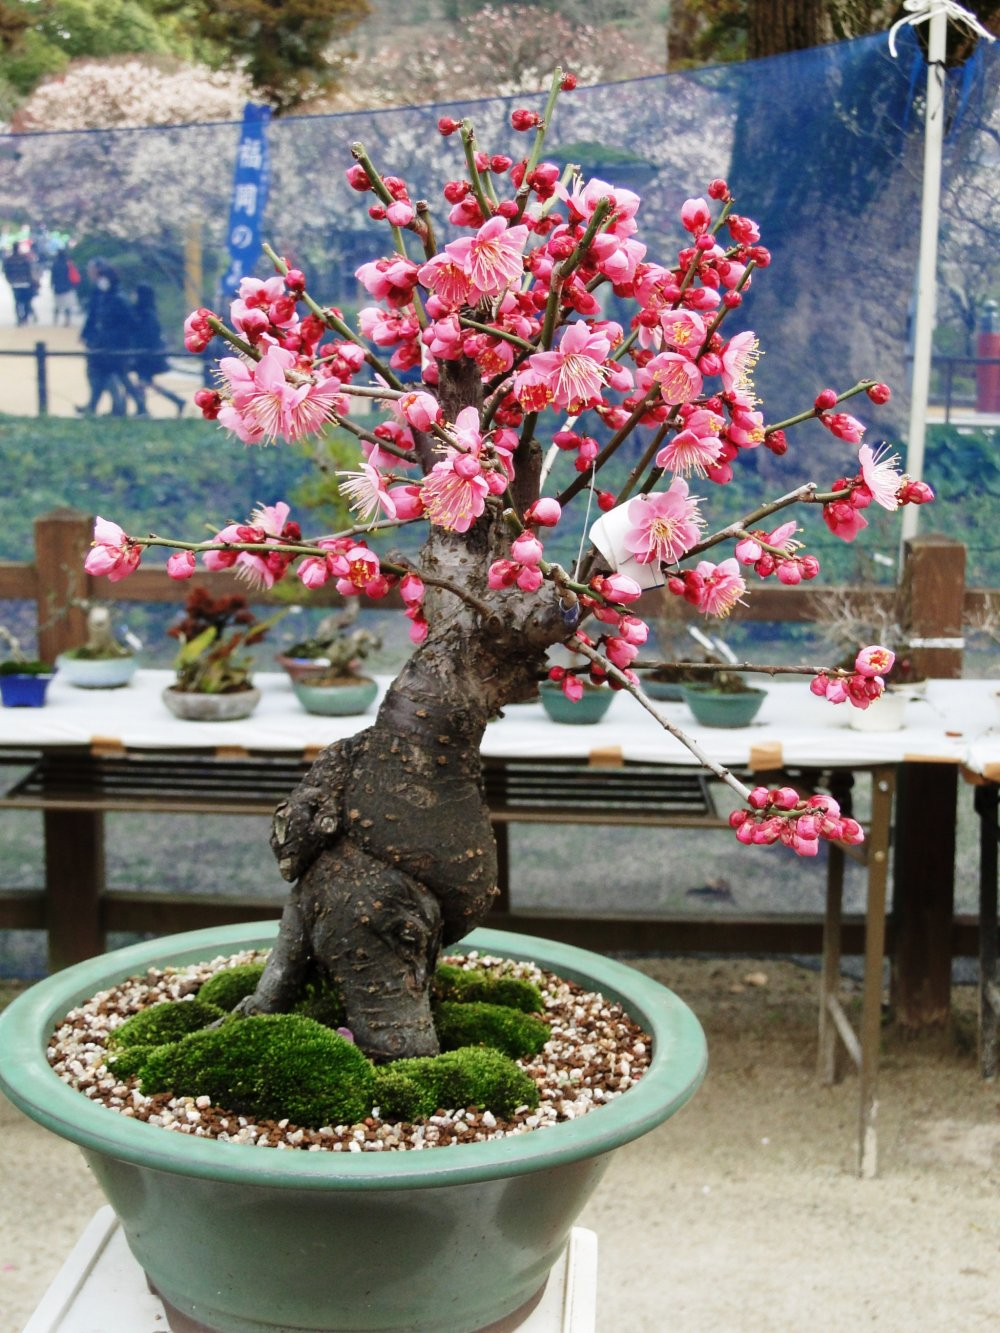 A plum tree pruned in the bonsai style